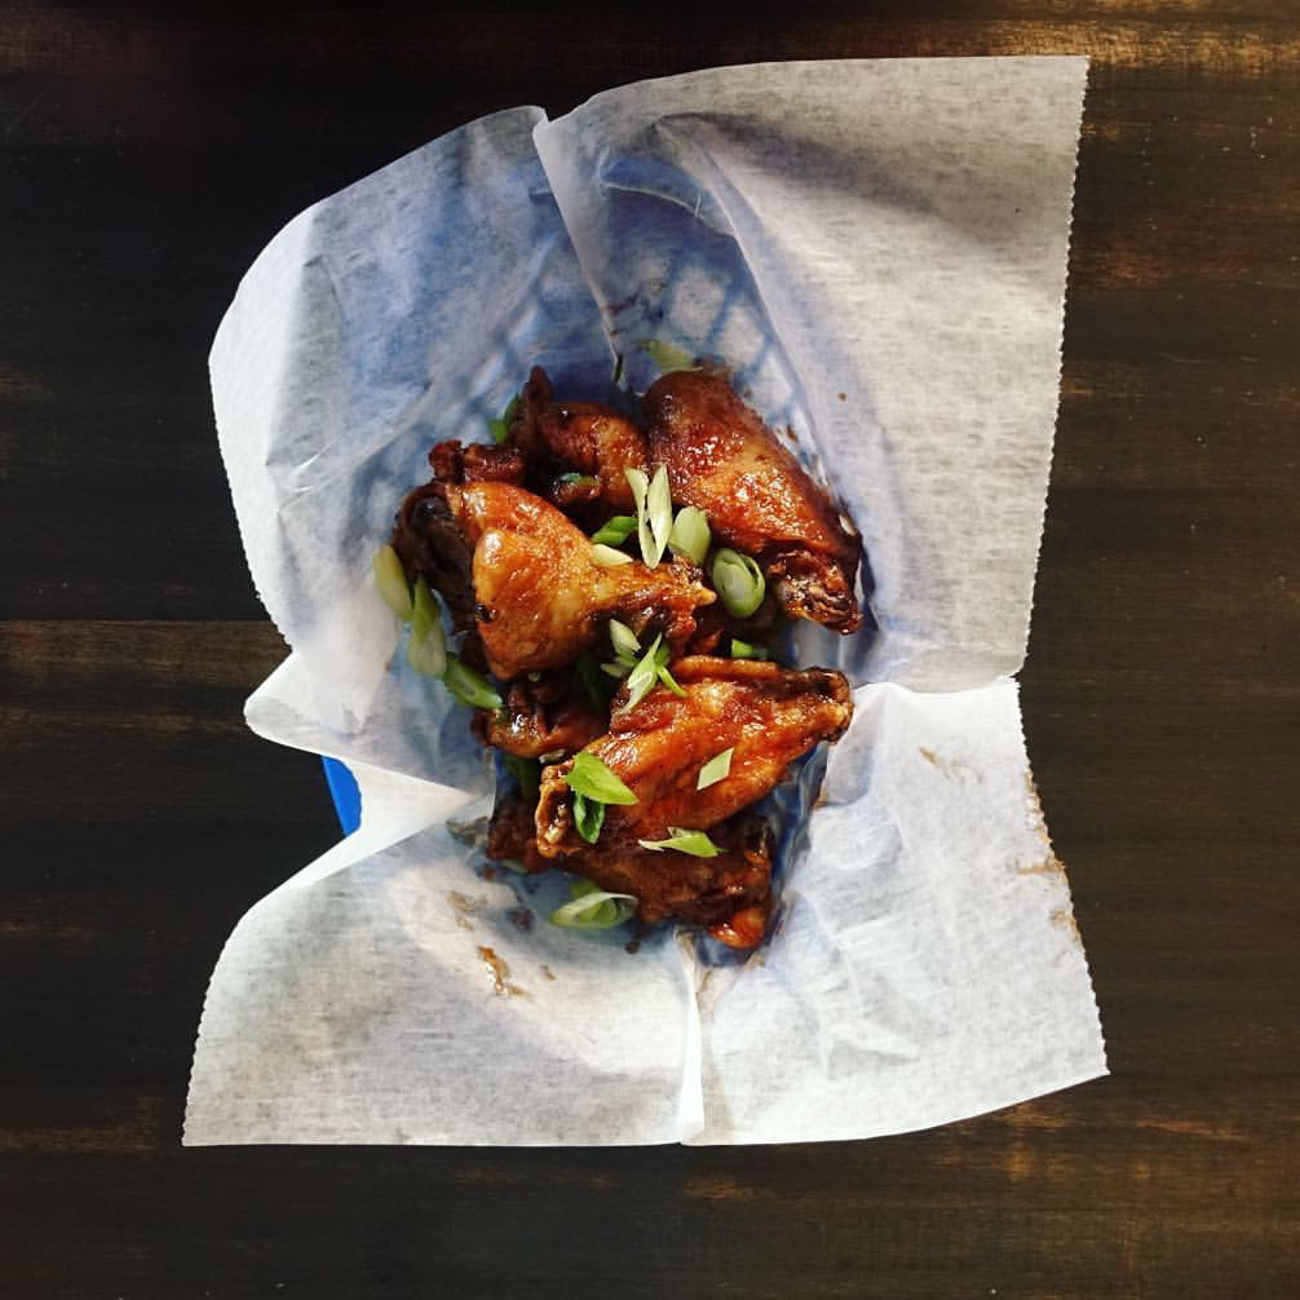 Hapa Wings: tossed in nuoc mam & honey / Image courtesy of Quan Hapa // Published: 1.10.17